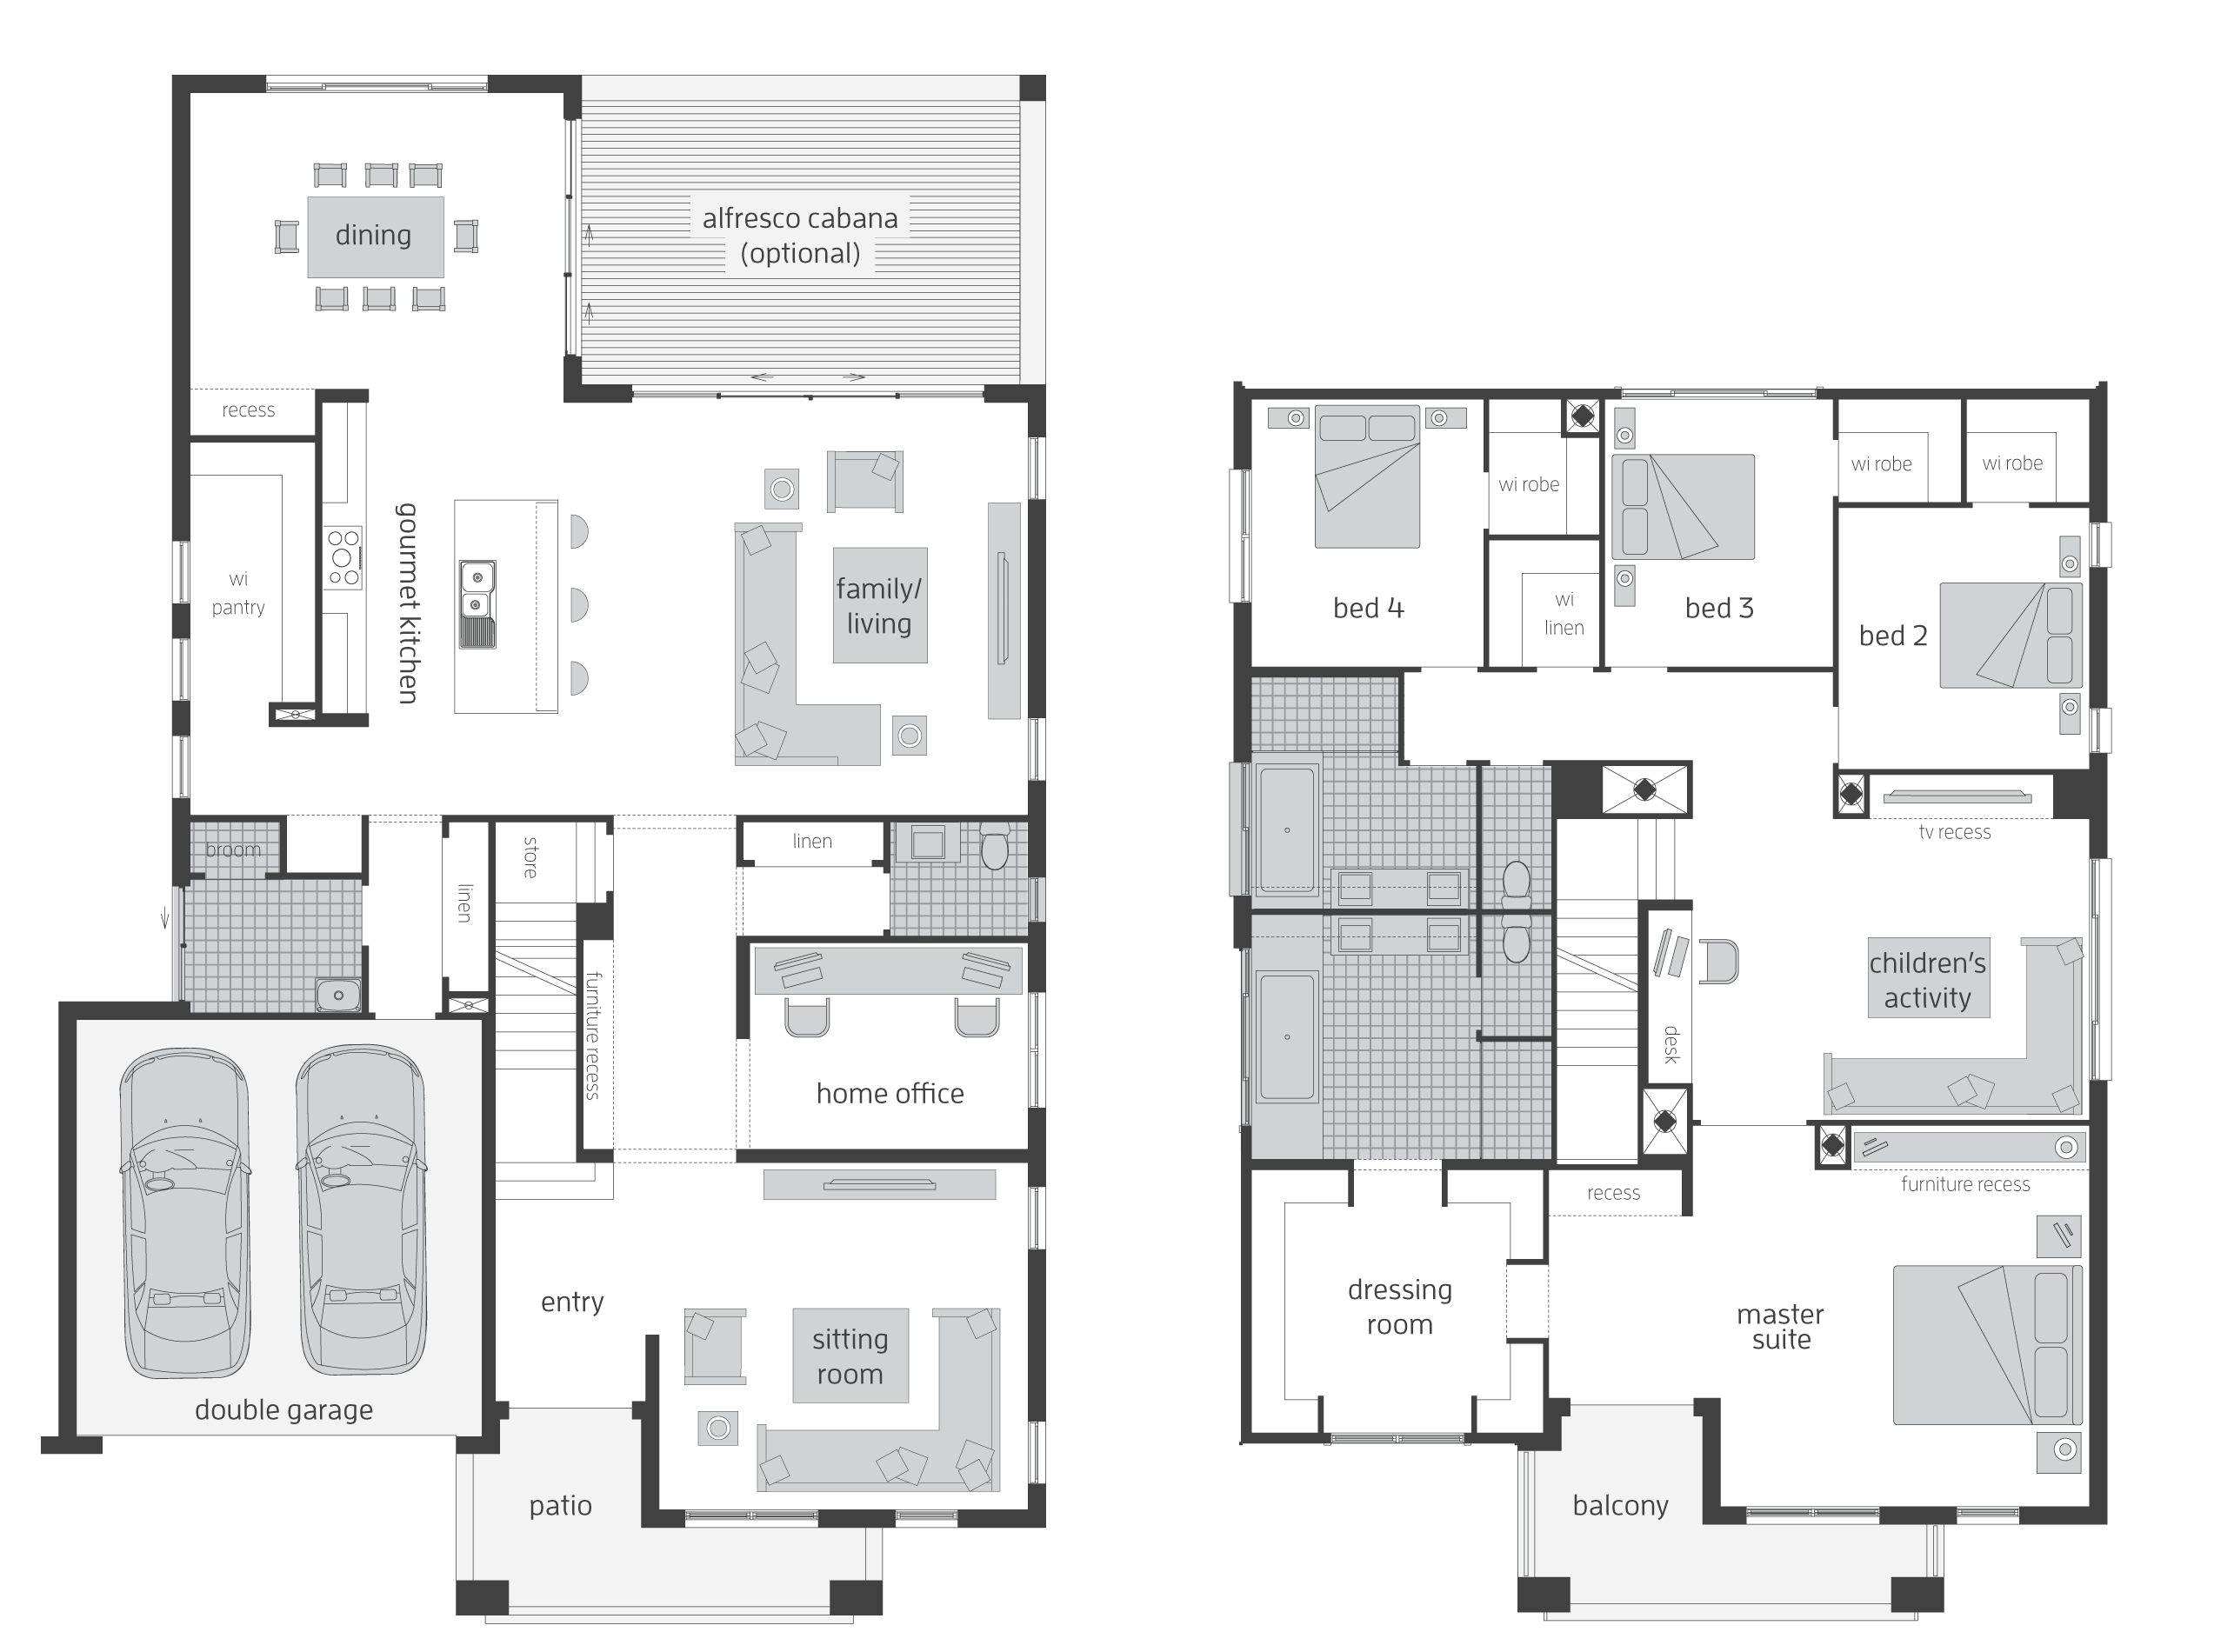 Best 2 Story Display Home - ec1675e300e6c477cf6a292e9e5c7f1a  Pictures_888027.png